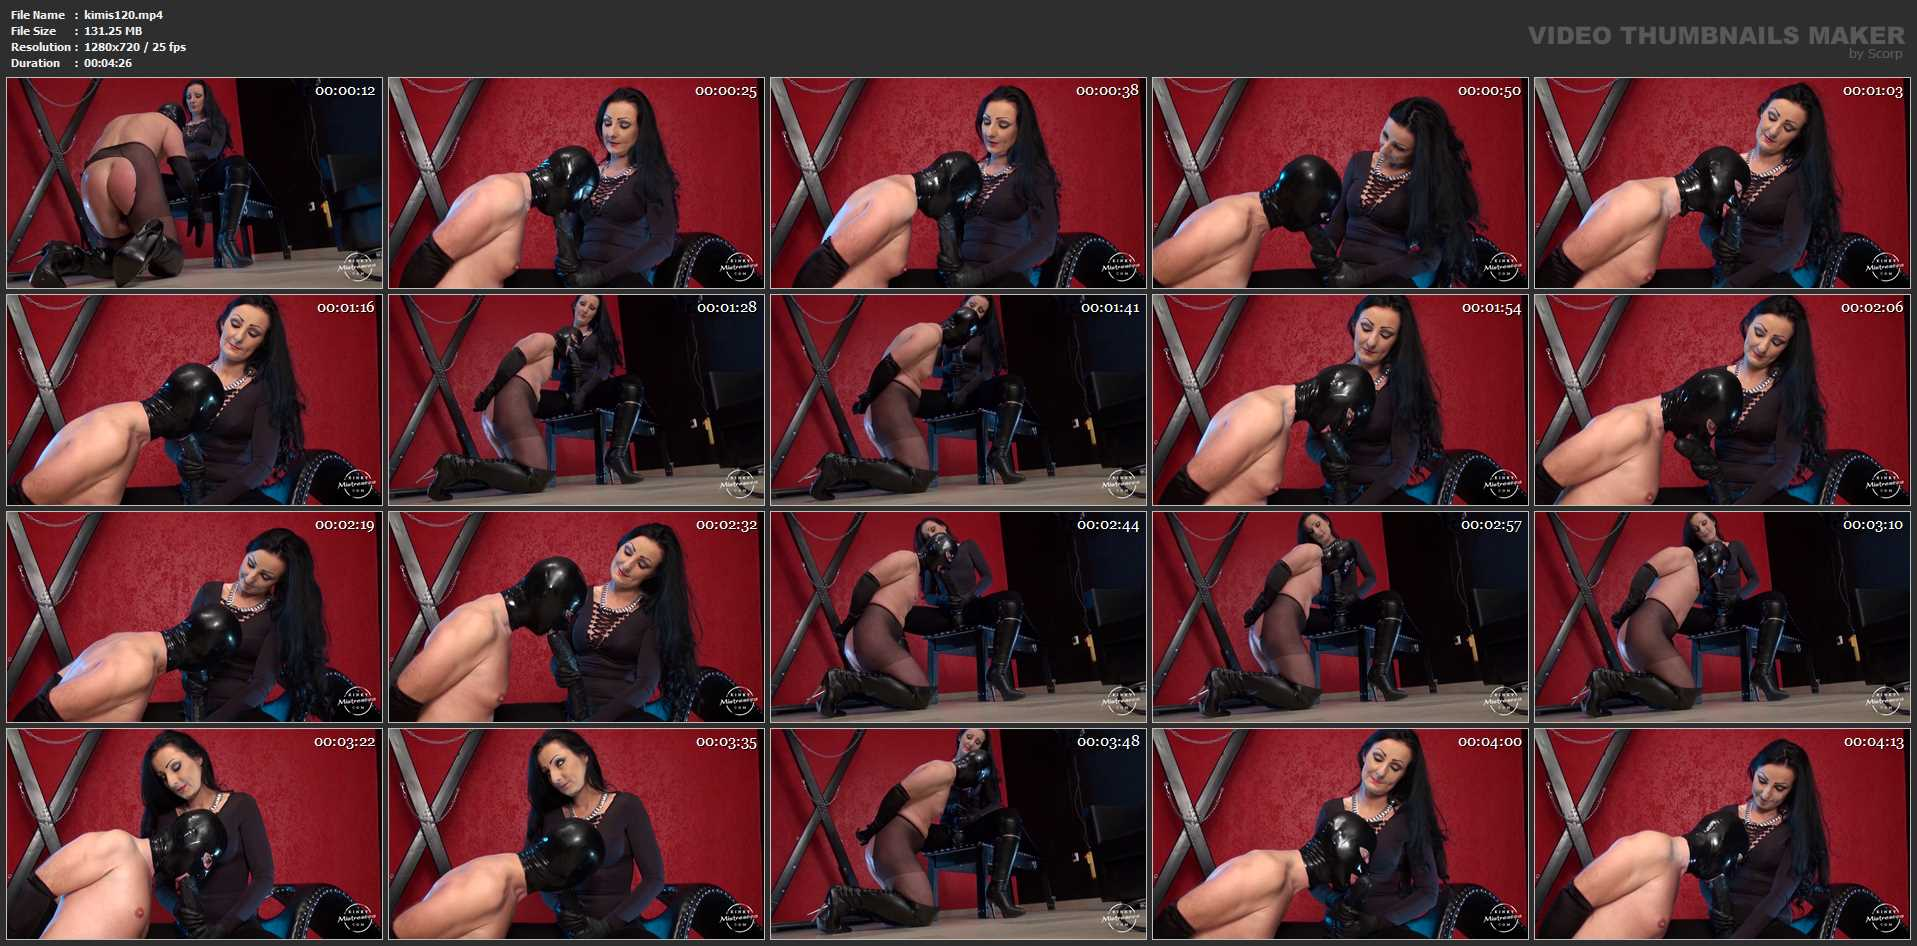 Lady Luciana In Scene: Suck Lucian's Extra Large Strapon - KINKYMISTRESSES - HD/720p/MP4